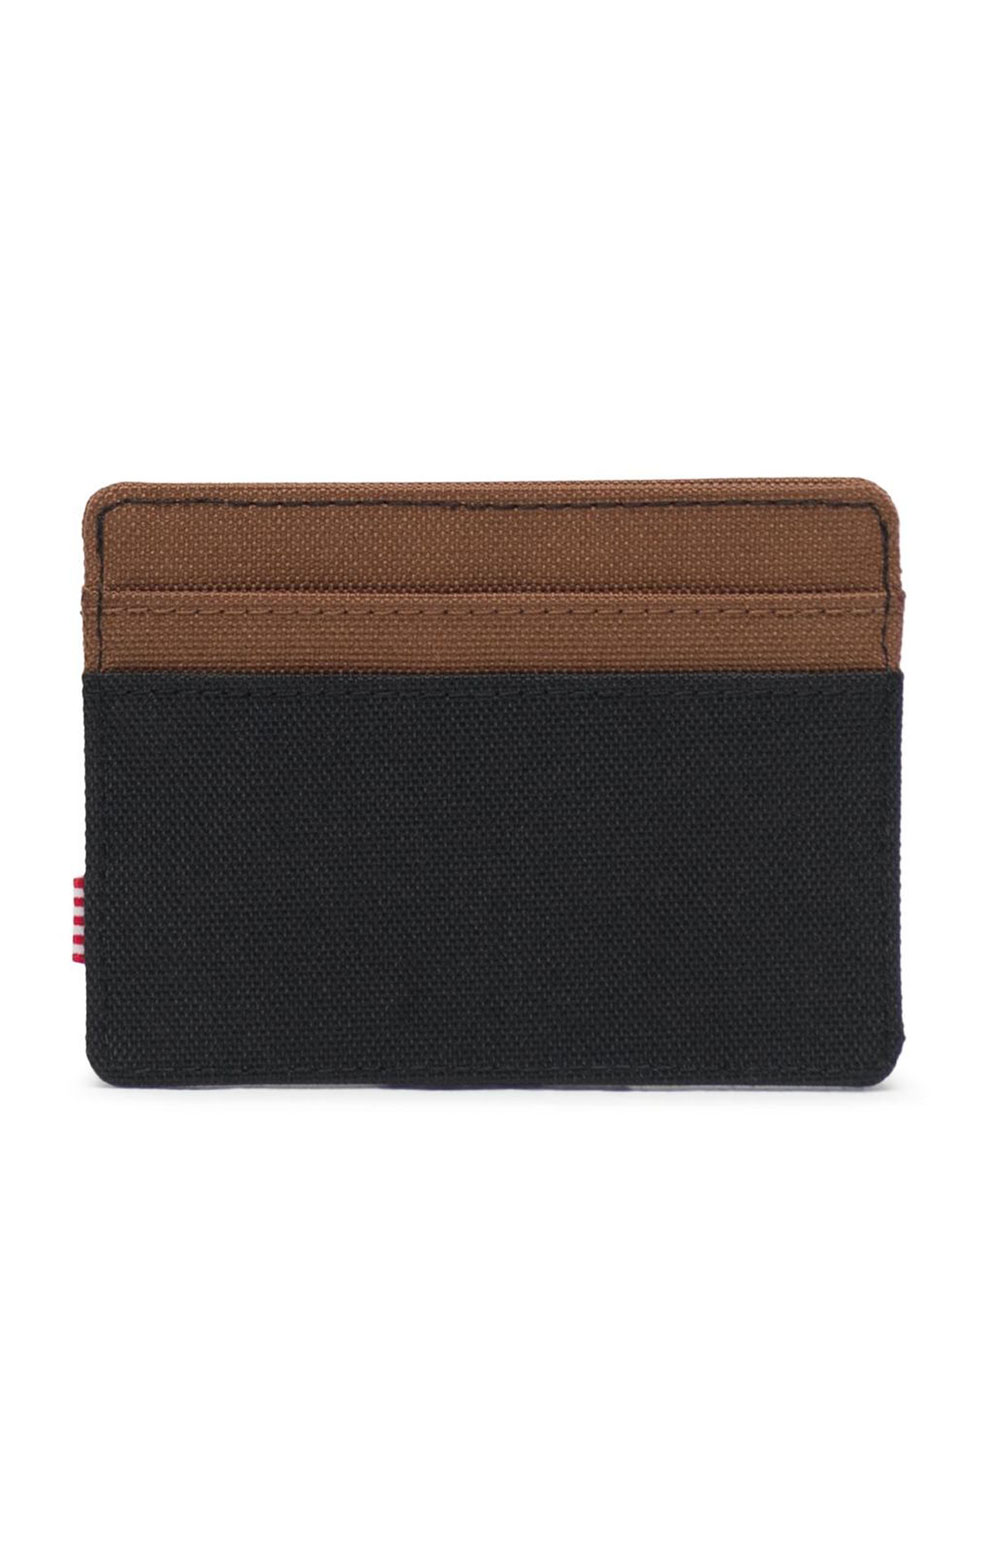 Charlie Wallet - Black/Saddle 3